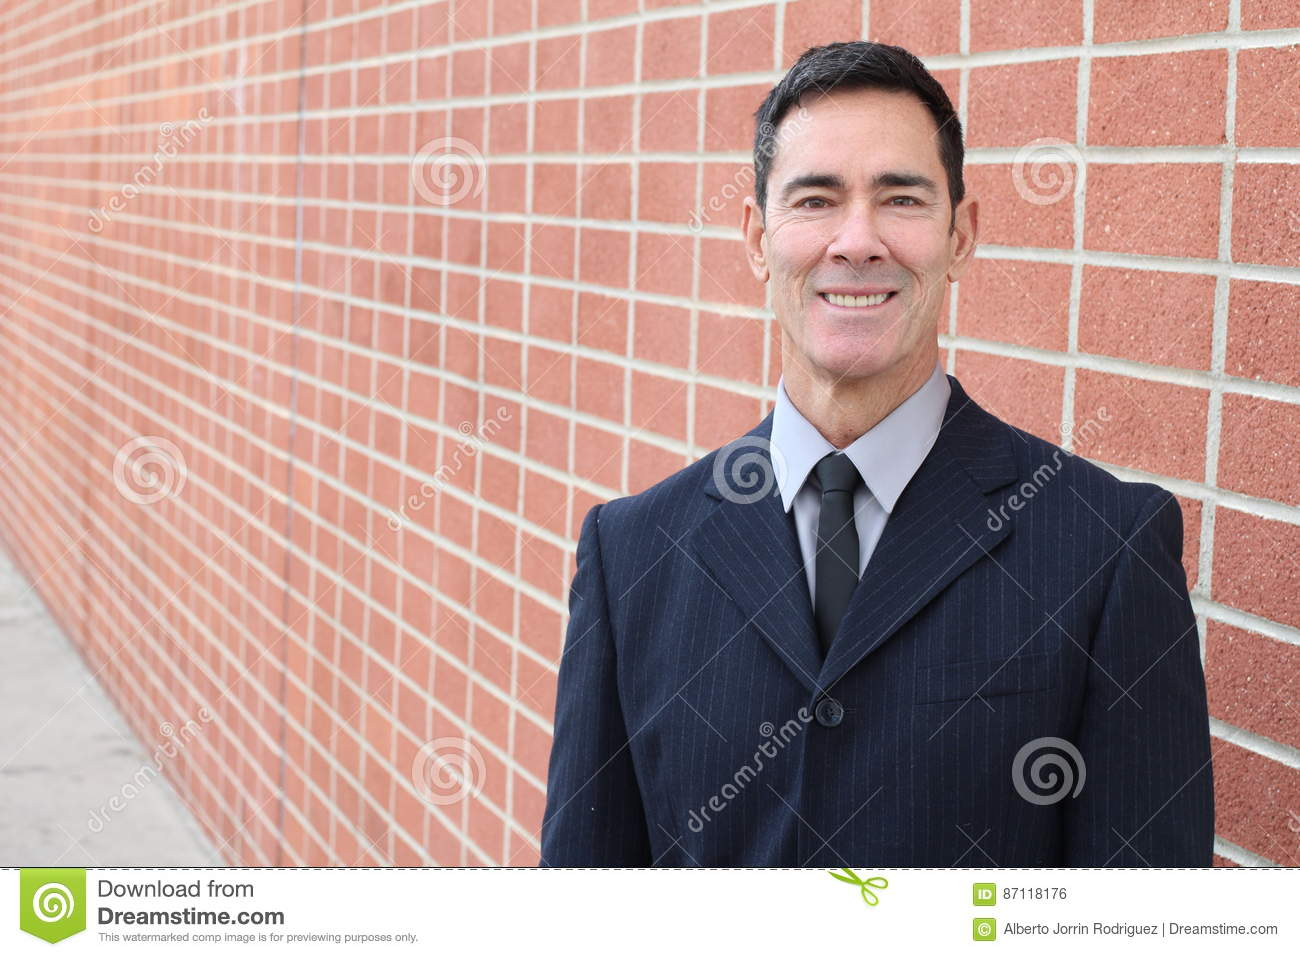 Smiling businessman on urban brick wall background with copy space